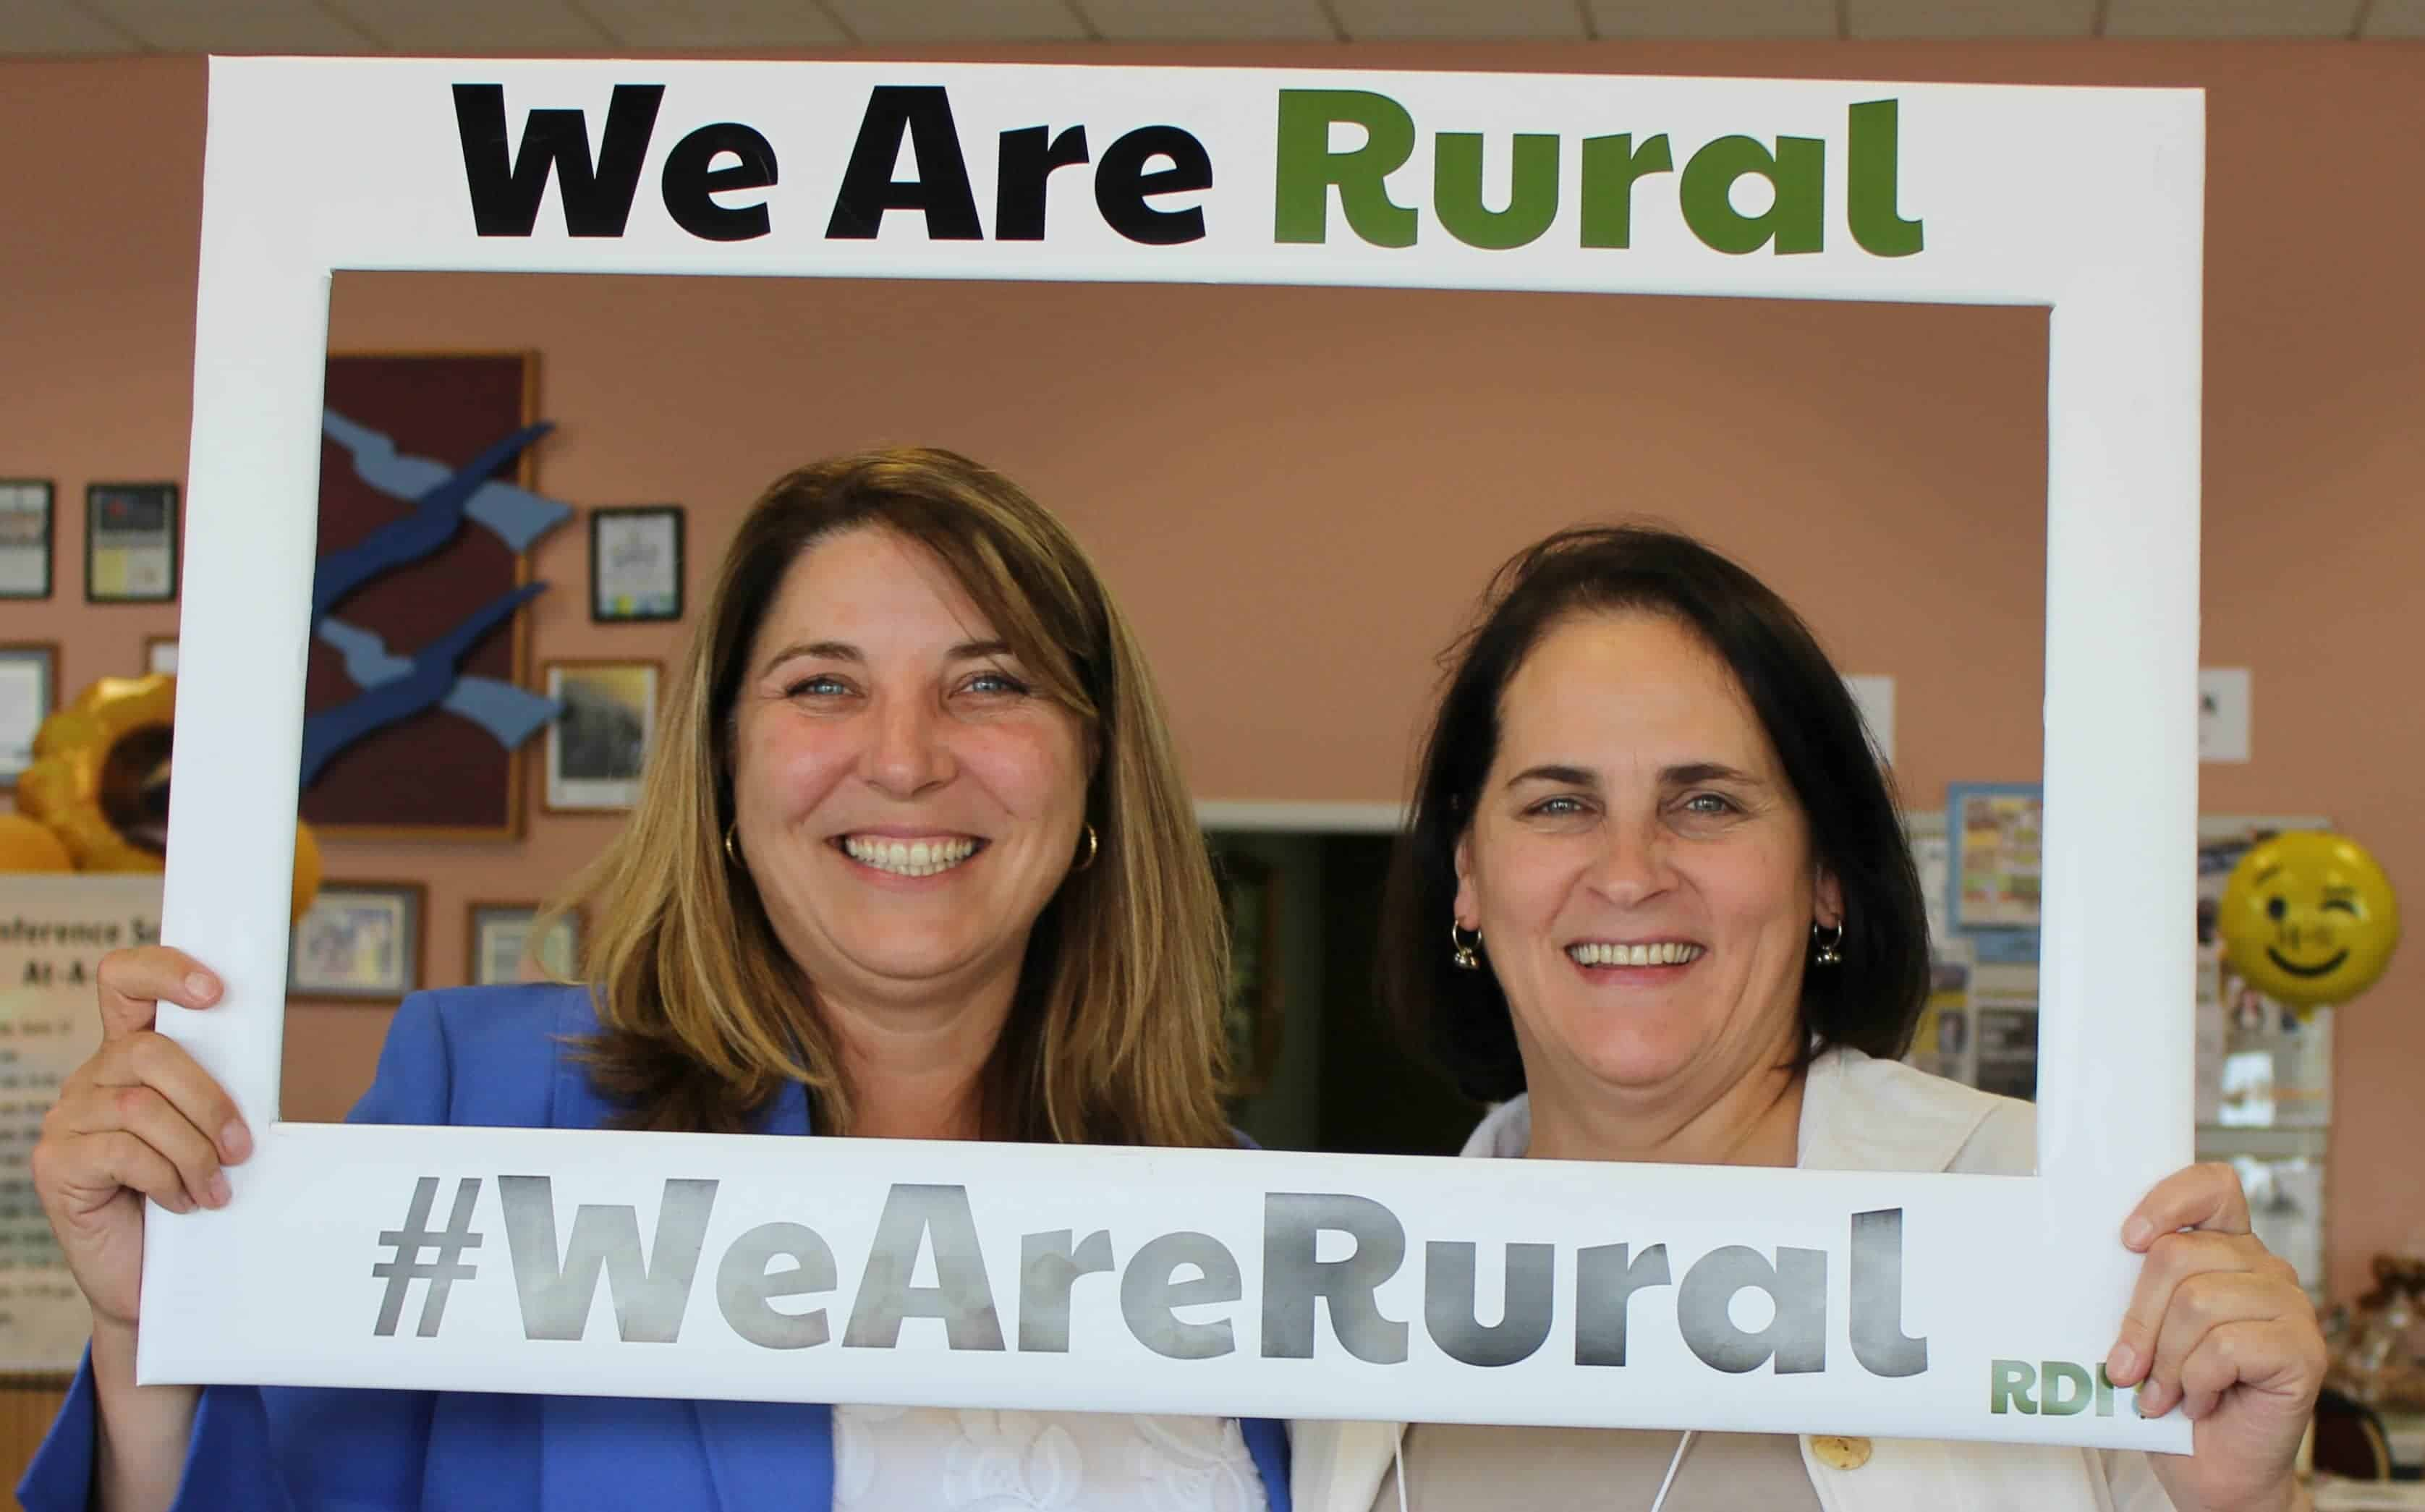 RDI's Acting Executive Director (and author of this article) Heidi Khokhar with USDA Rural Development Oregon State Director Vicki Walker at the Embracing Our Treasure conference in Ontario, Oregon.